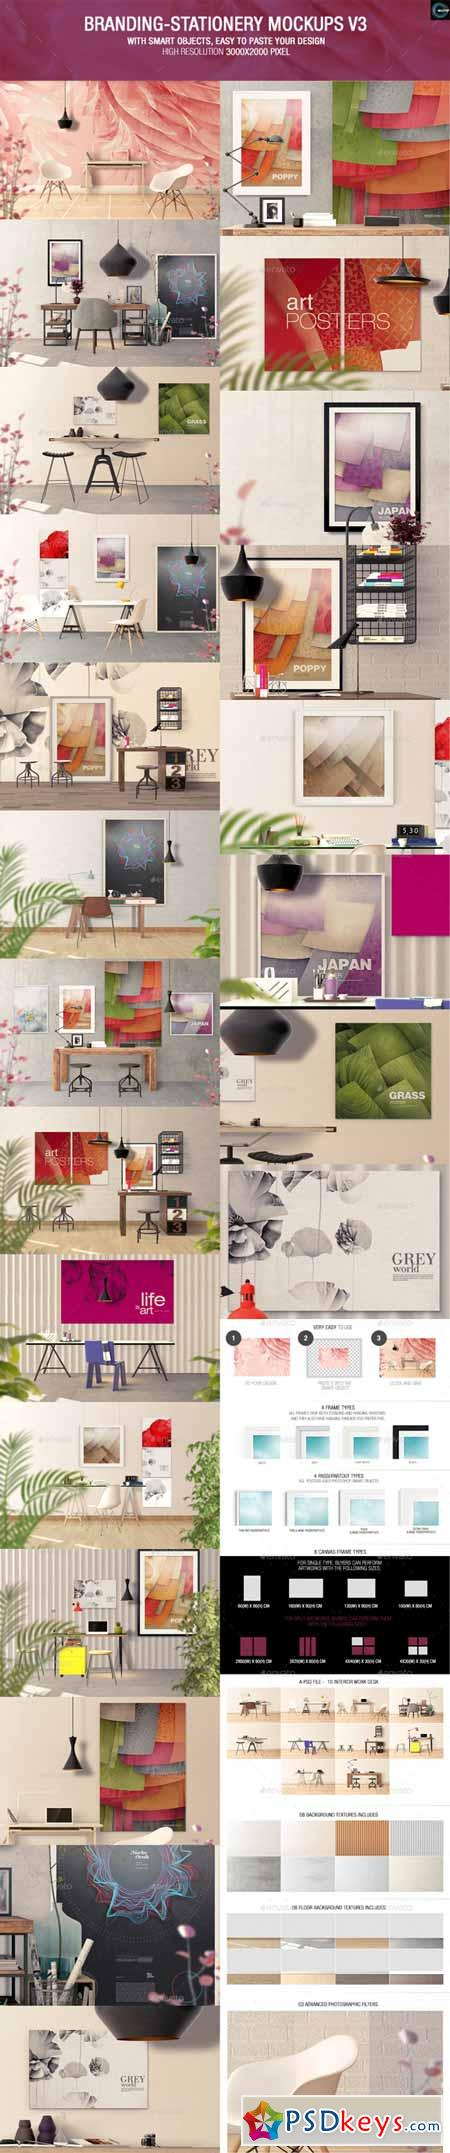 Art Wall Mockups - Interior Work Desk 10409605